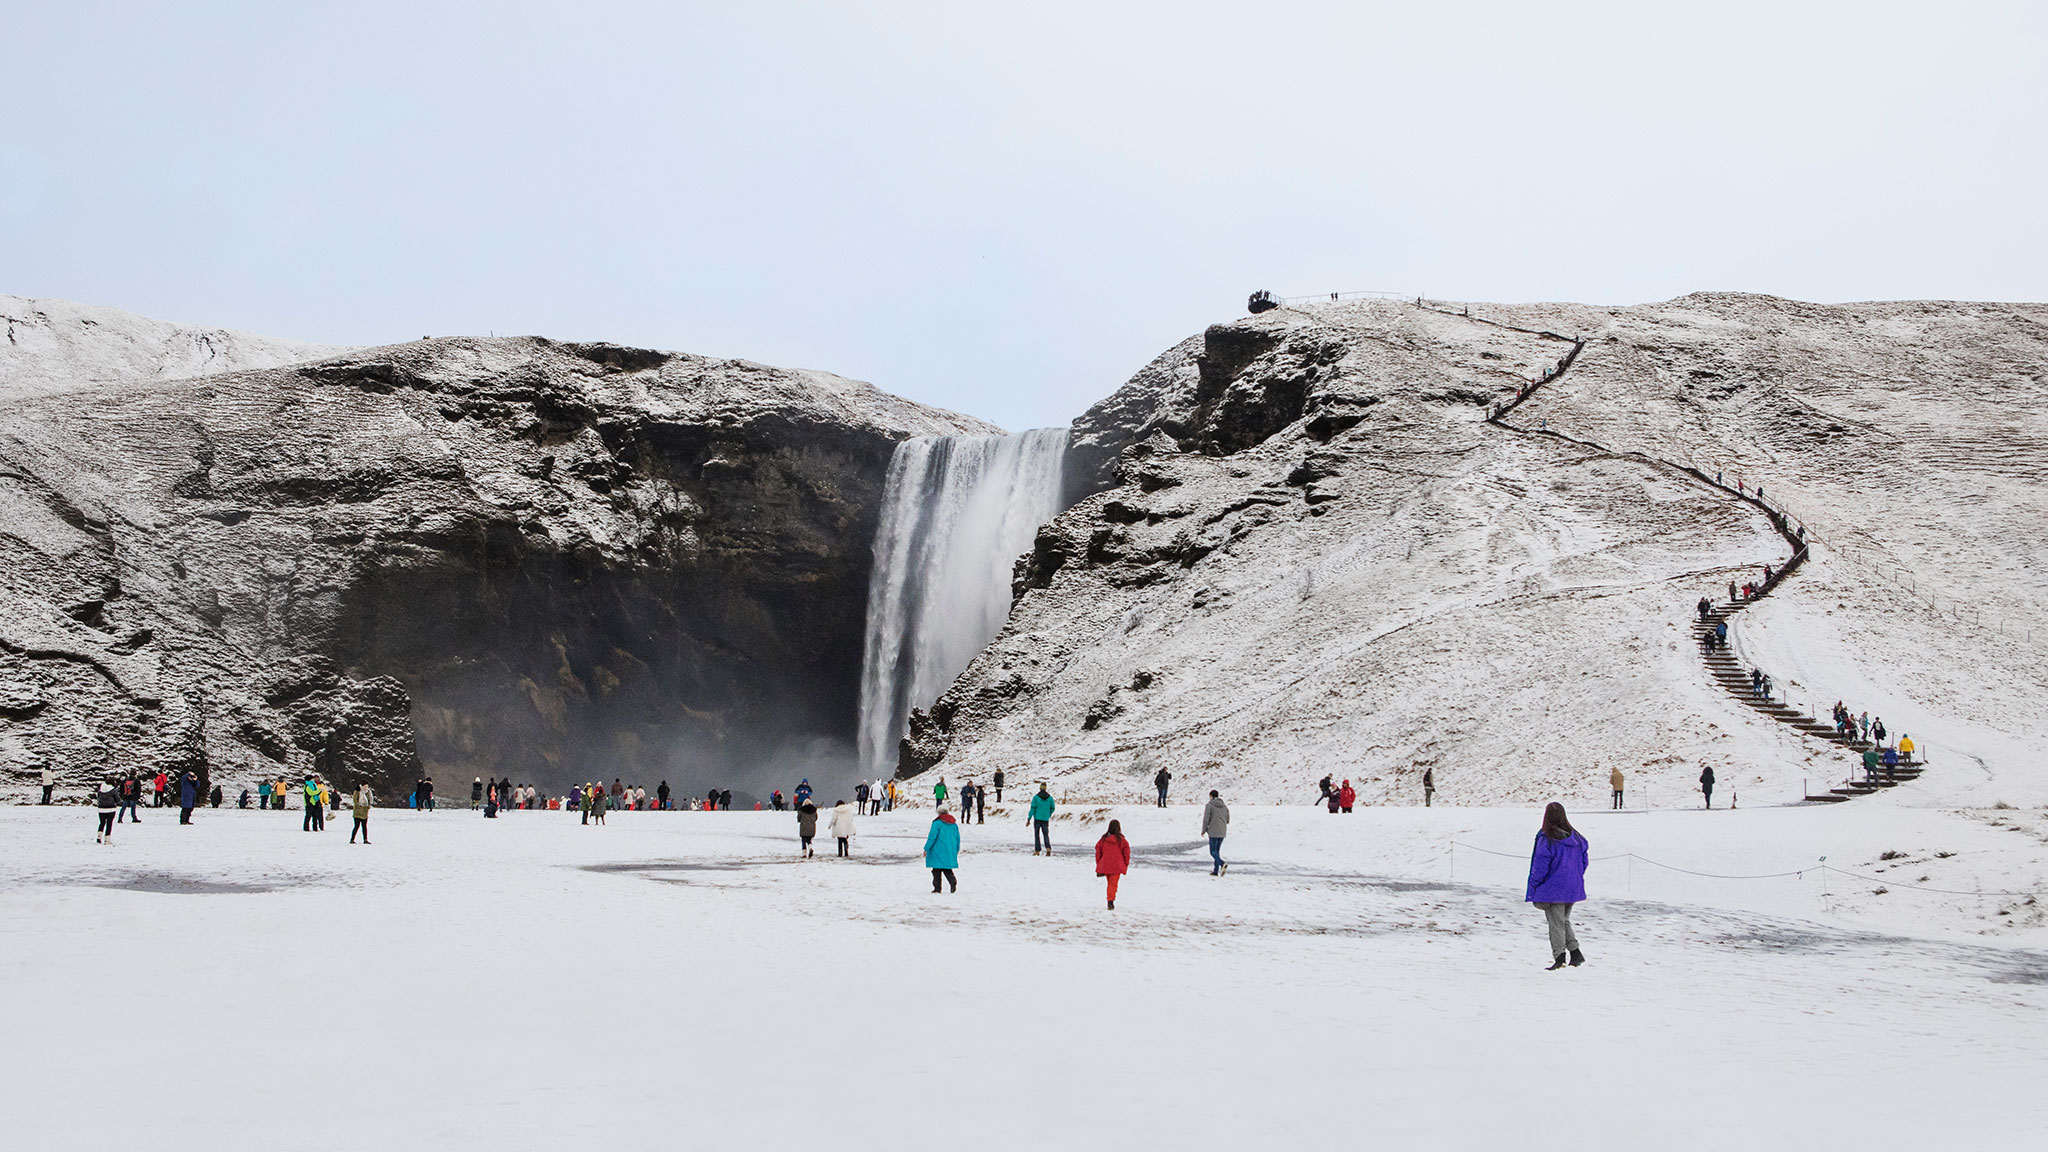 Icelands Tourism Boom And Backlash - 8 destinations putting a cap on tourist numbers